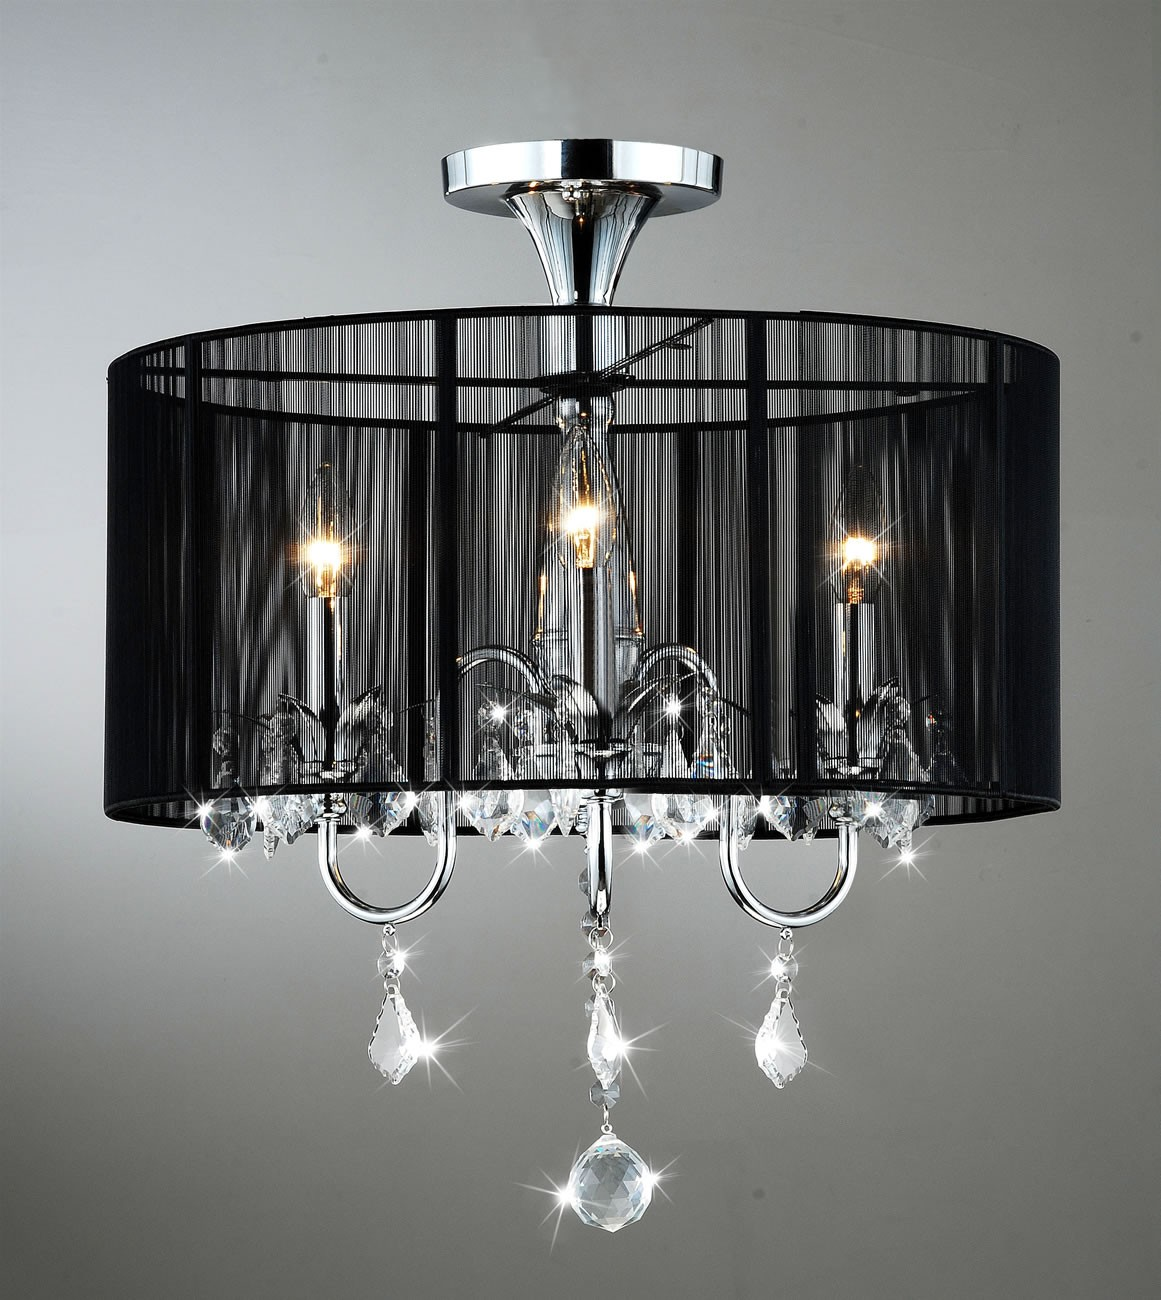 Aubree 3 lights black and chrome semi flush mount crystal chandelier aubree 3 lights black and chrome semi flush mount crystal chandelier 185w x aloadofball